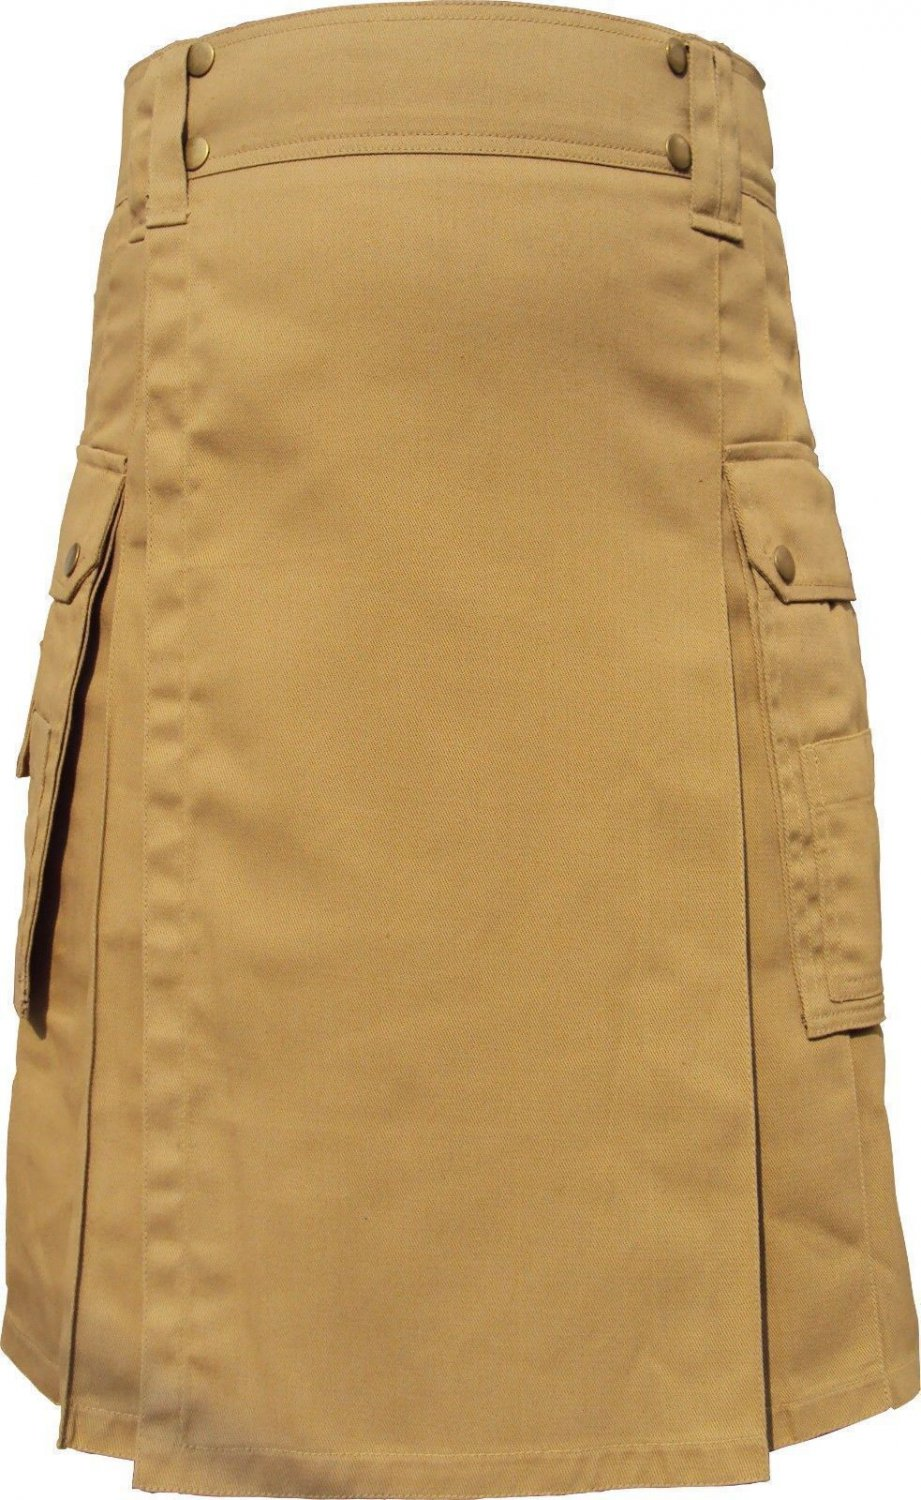 Men's Scottish Highland Active Modern Pocket Khaki Light Brown Cotton Kilt Size 60